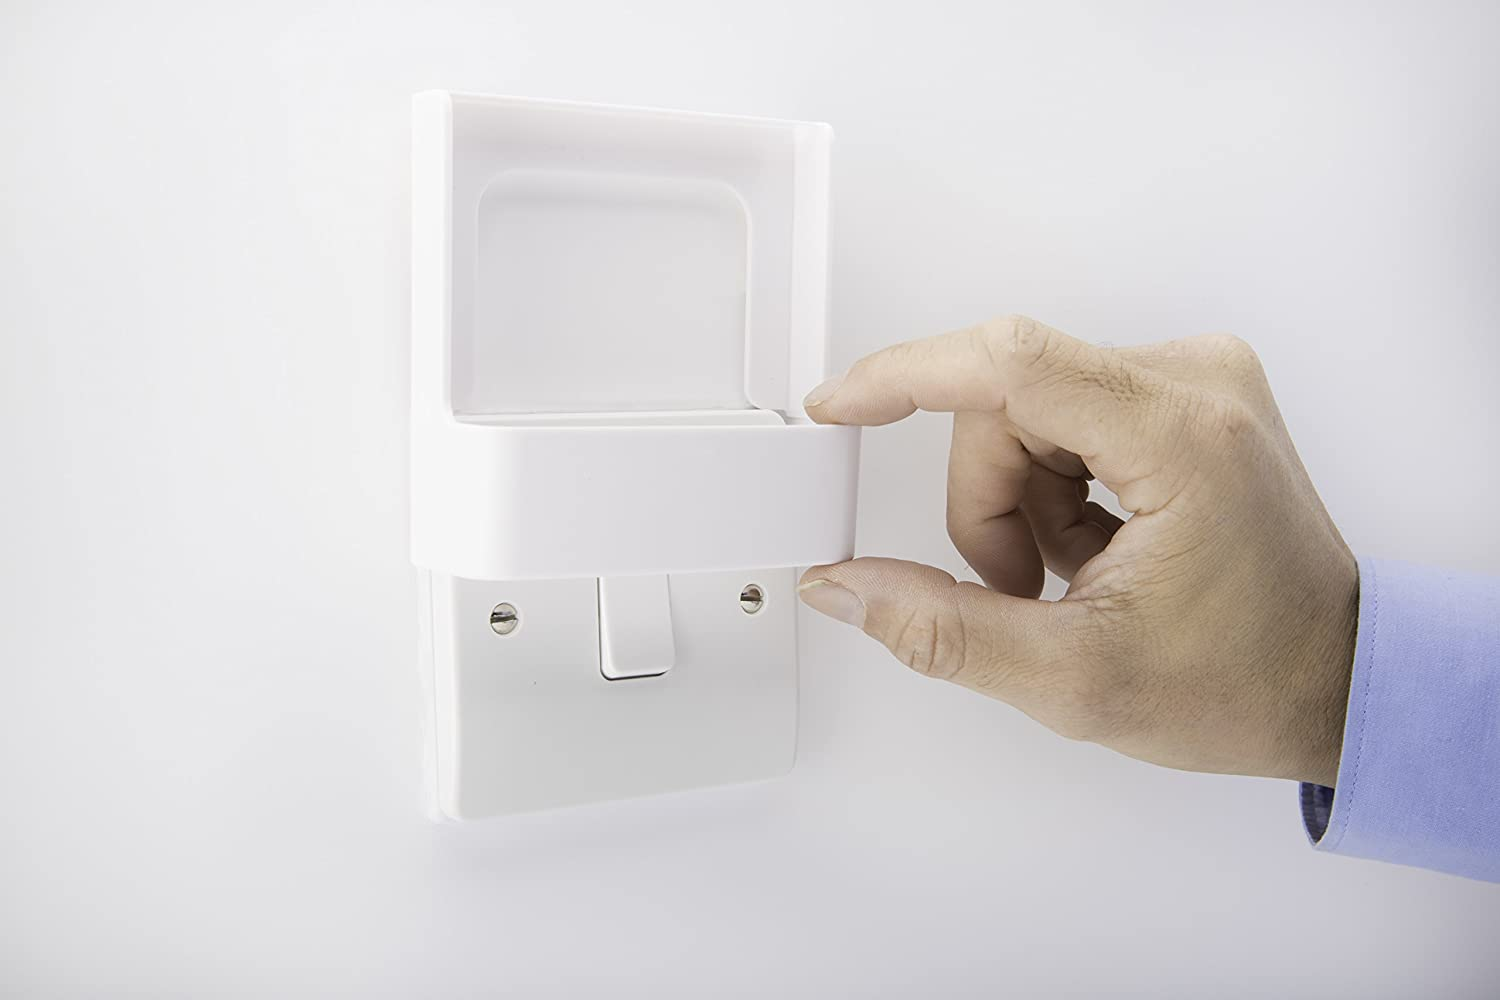 Light Switch Timer By Mydome Police Approved Retro Fit Wiring Up A One Way Additionally New Wire Fixture No Home Security Burglar Deterrent Diy Tools